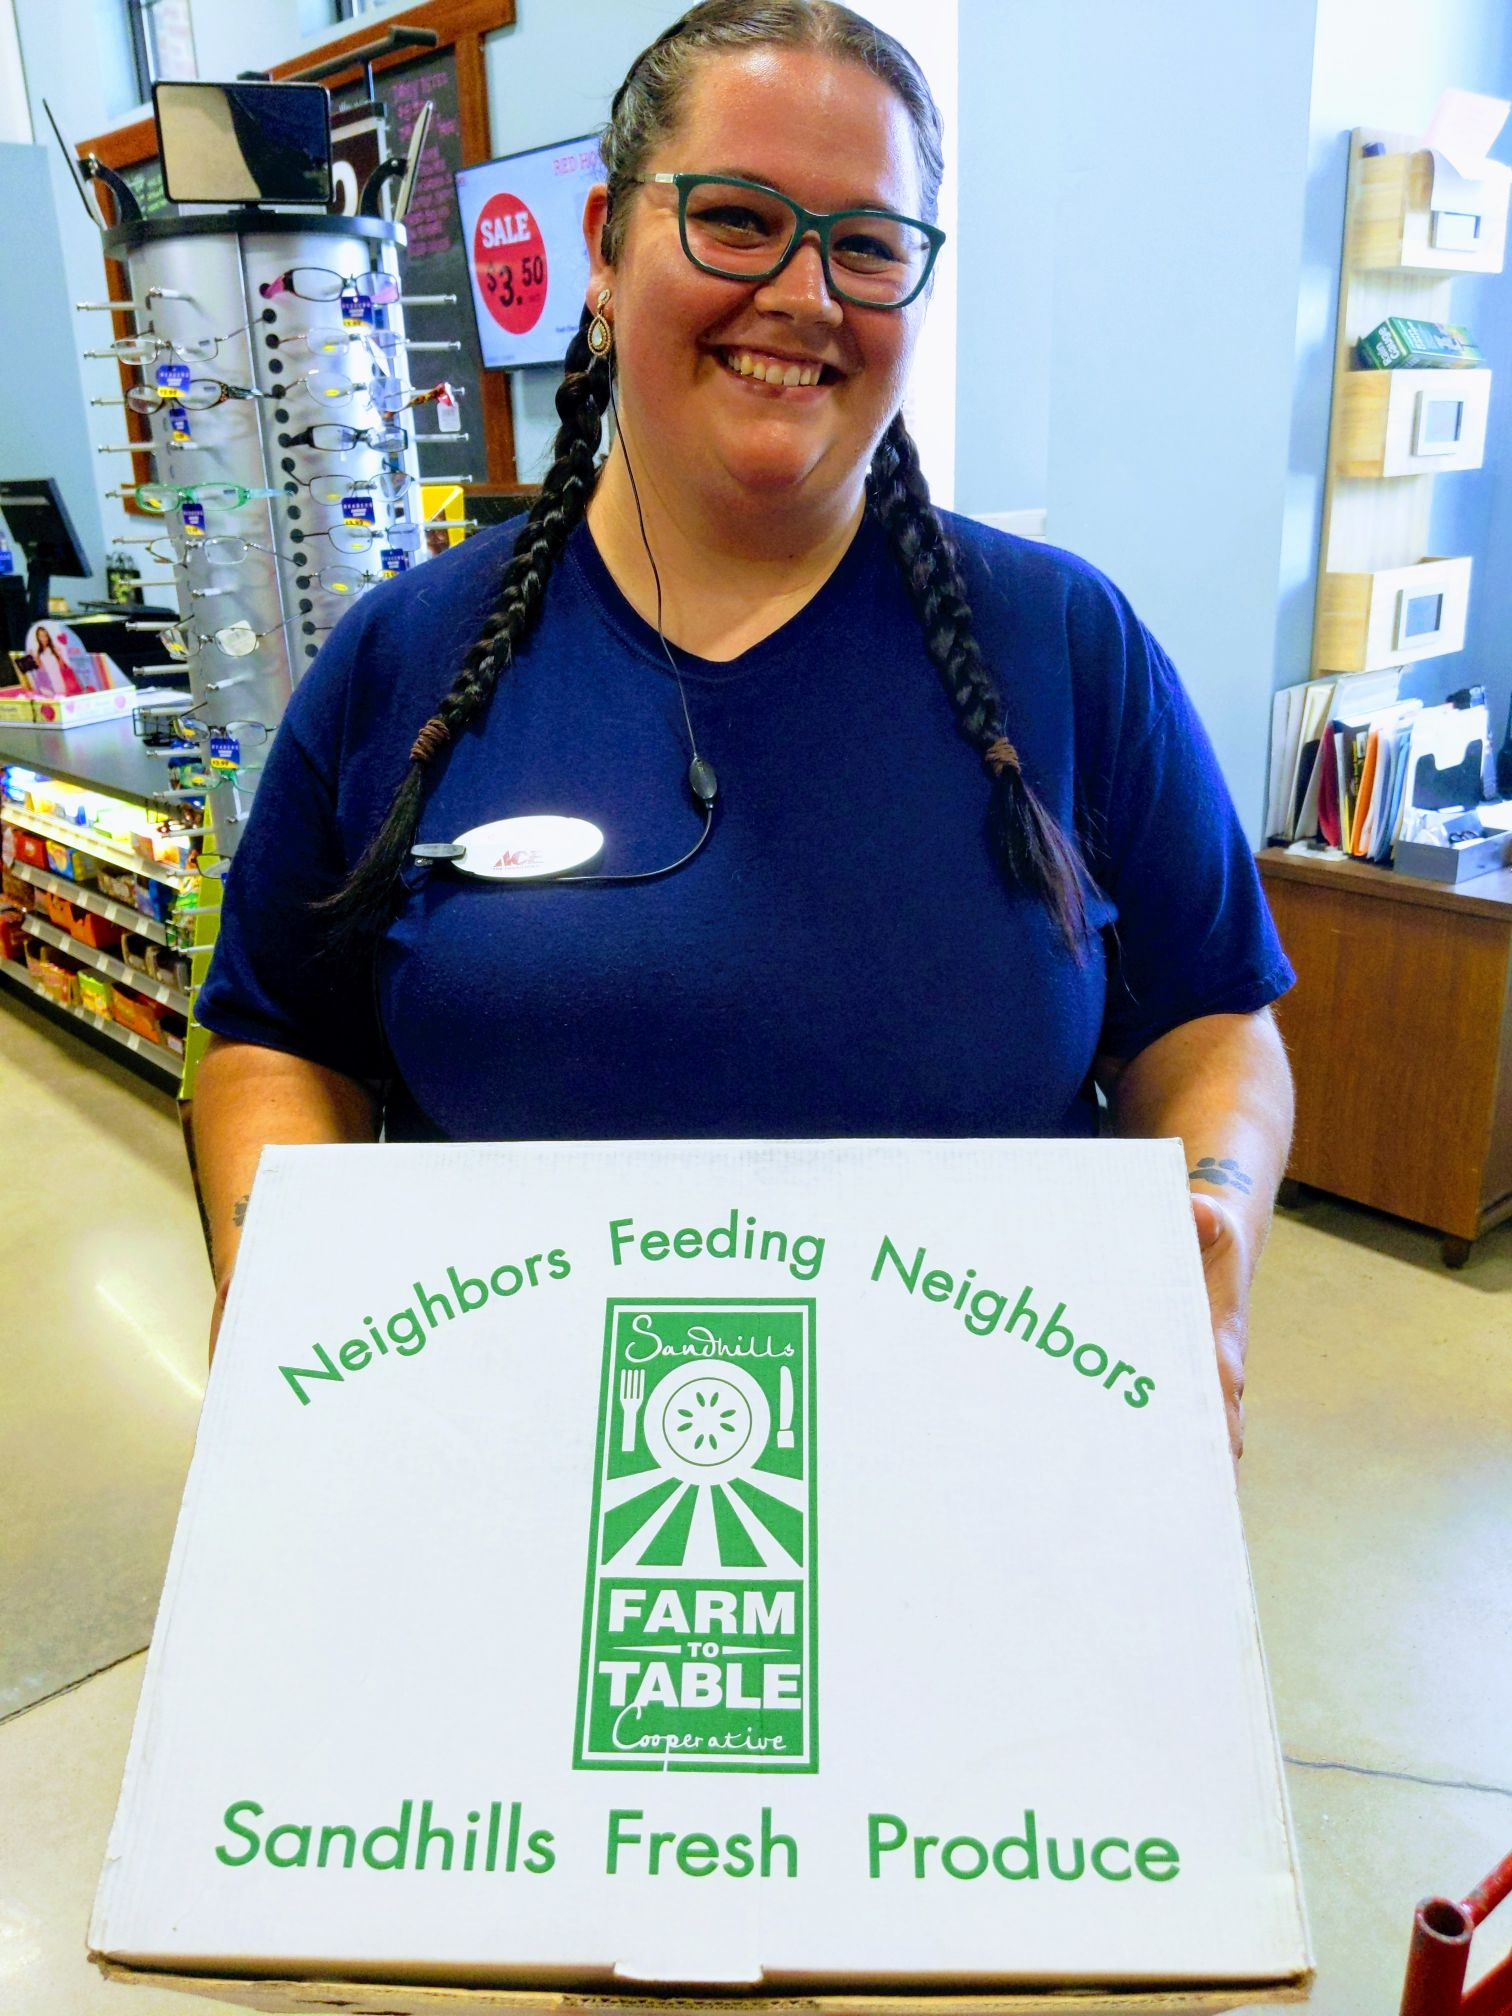 greeting customers with a smile at ace hardware